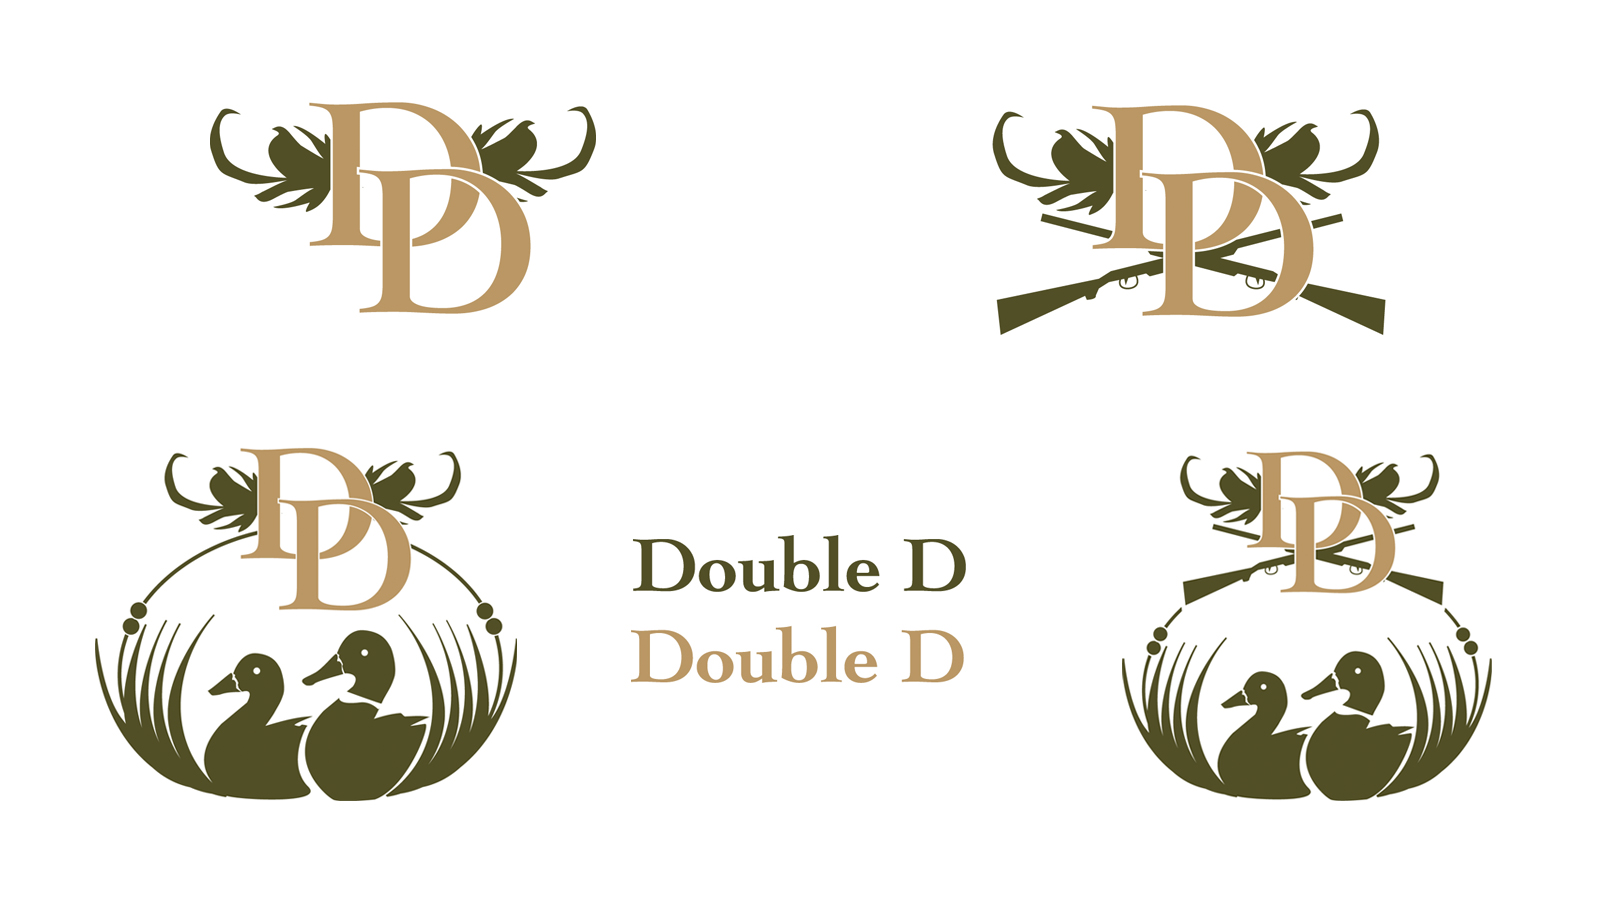 Double-D-logos-large.jpg